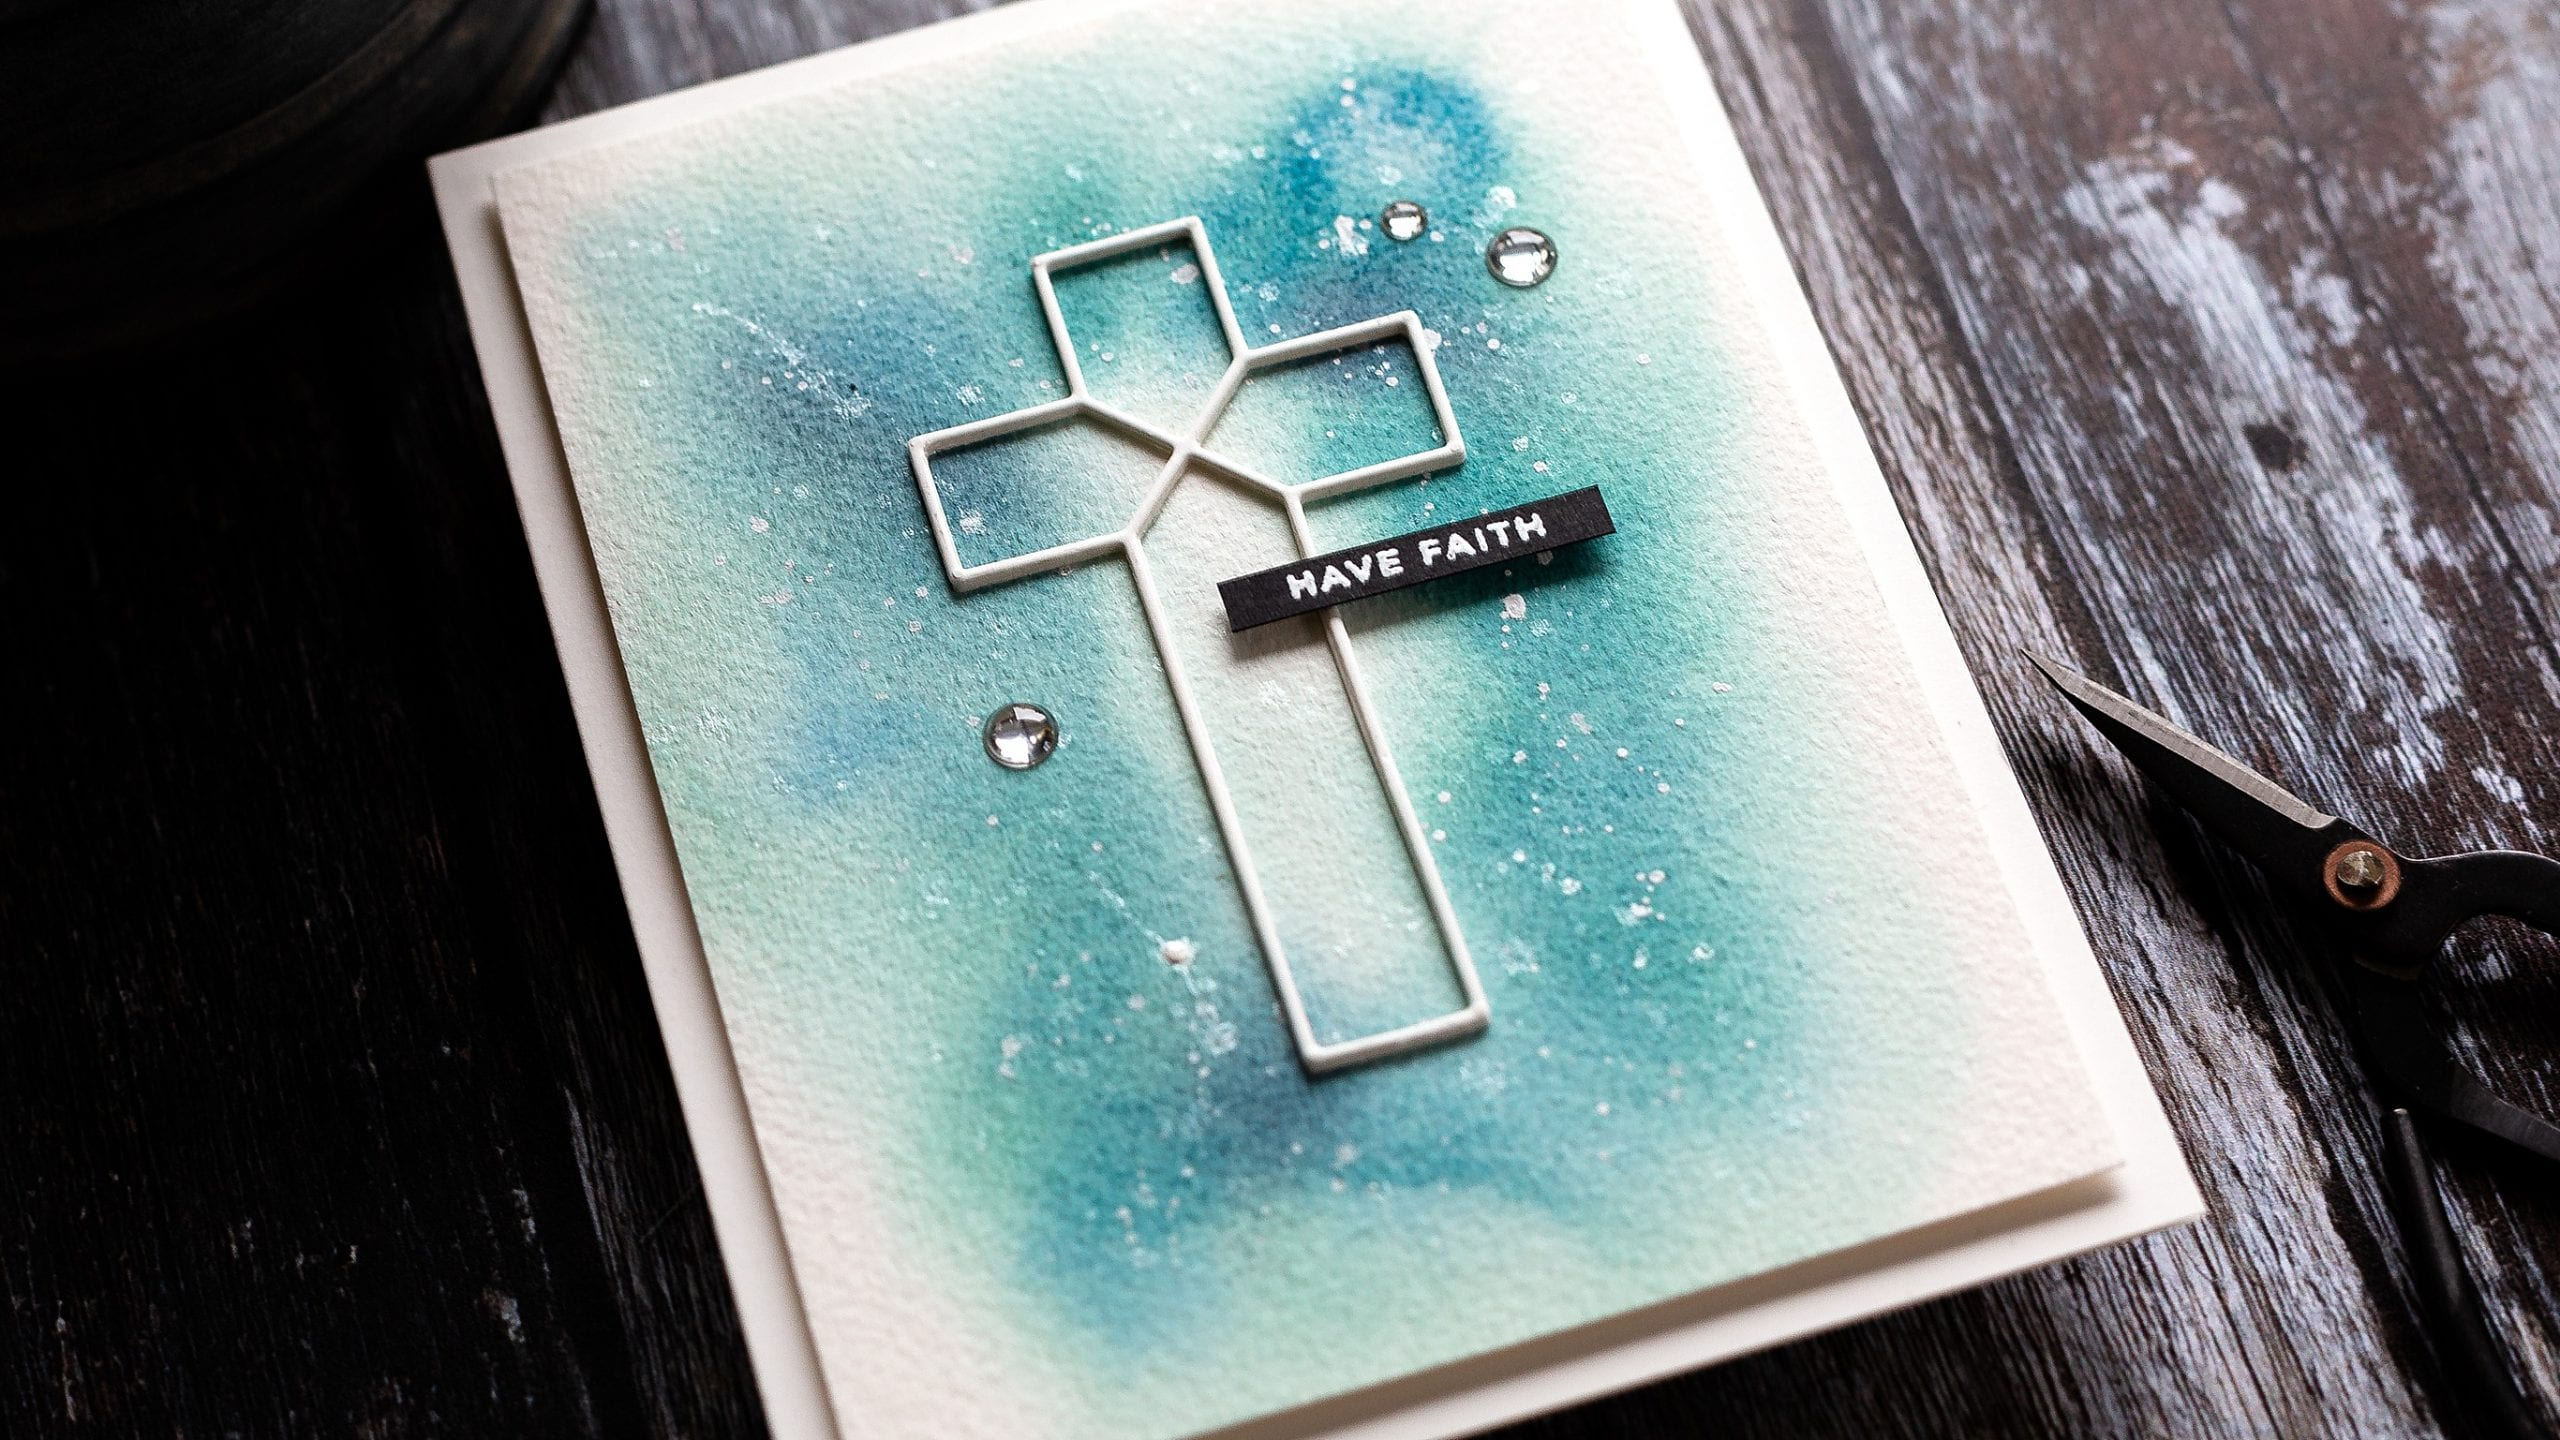 Simplicity speaks volumes with a simple die cut cross showcased on a soft watercoloured background. Handmade 'have faith' card by Debby Hughes #homemade #handmade #watercolor